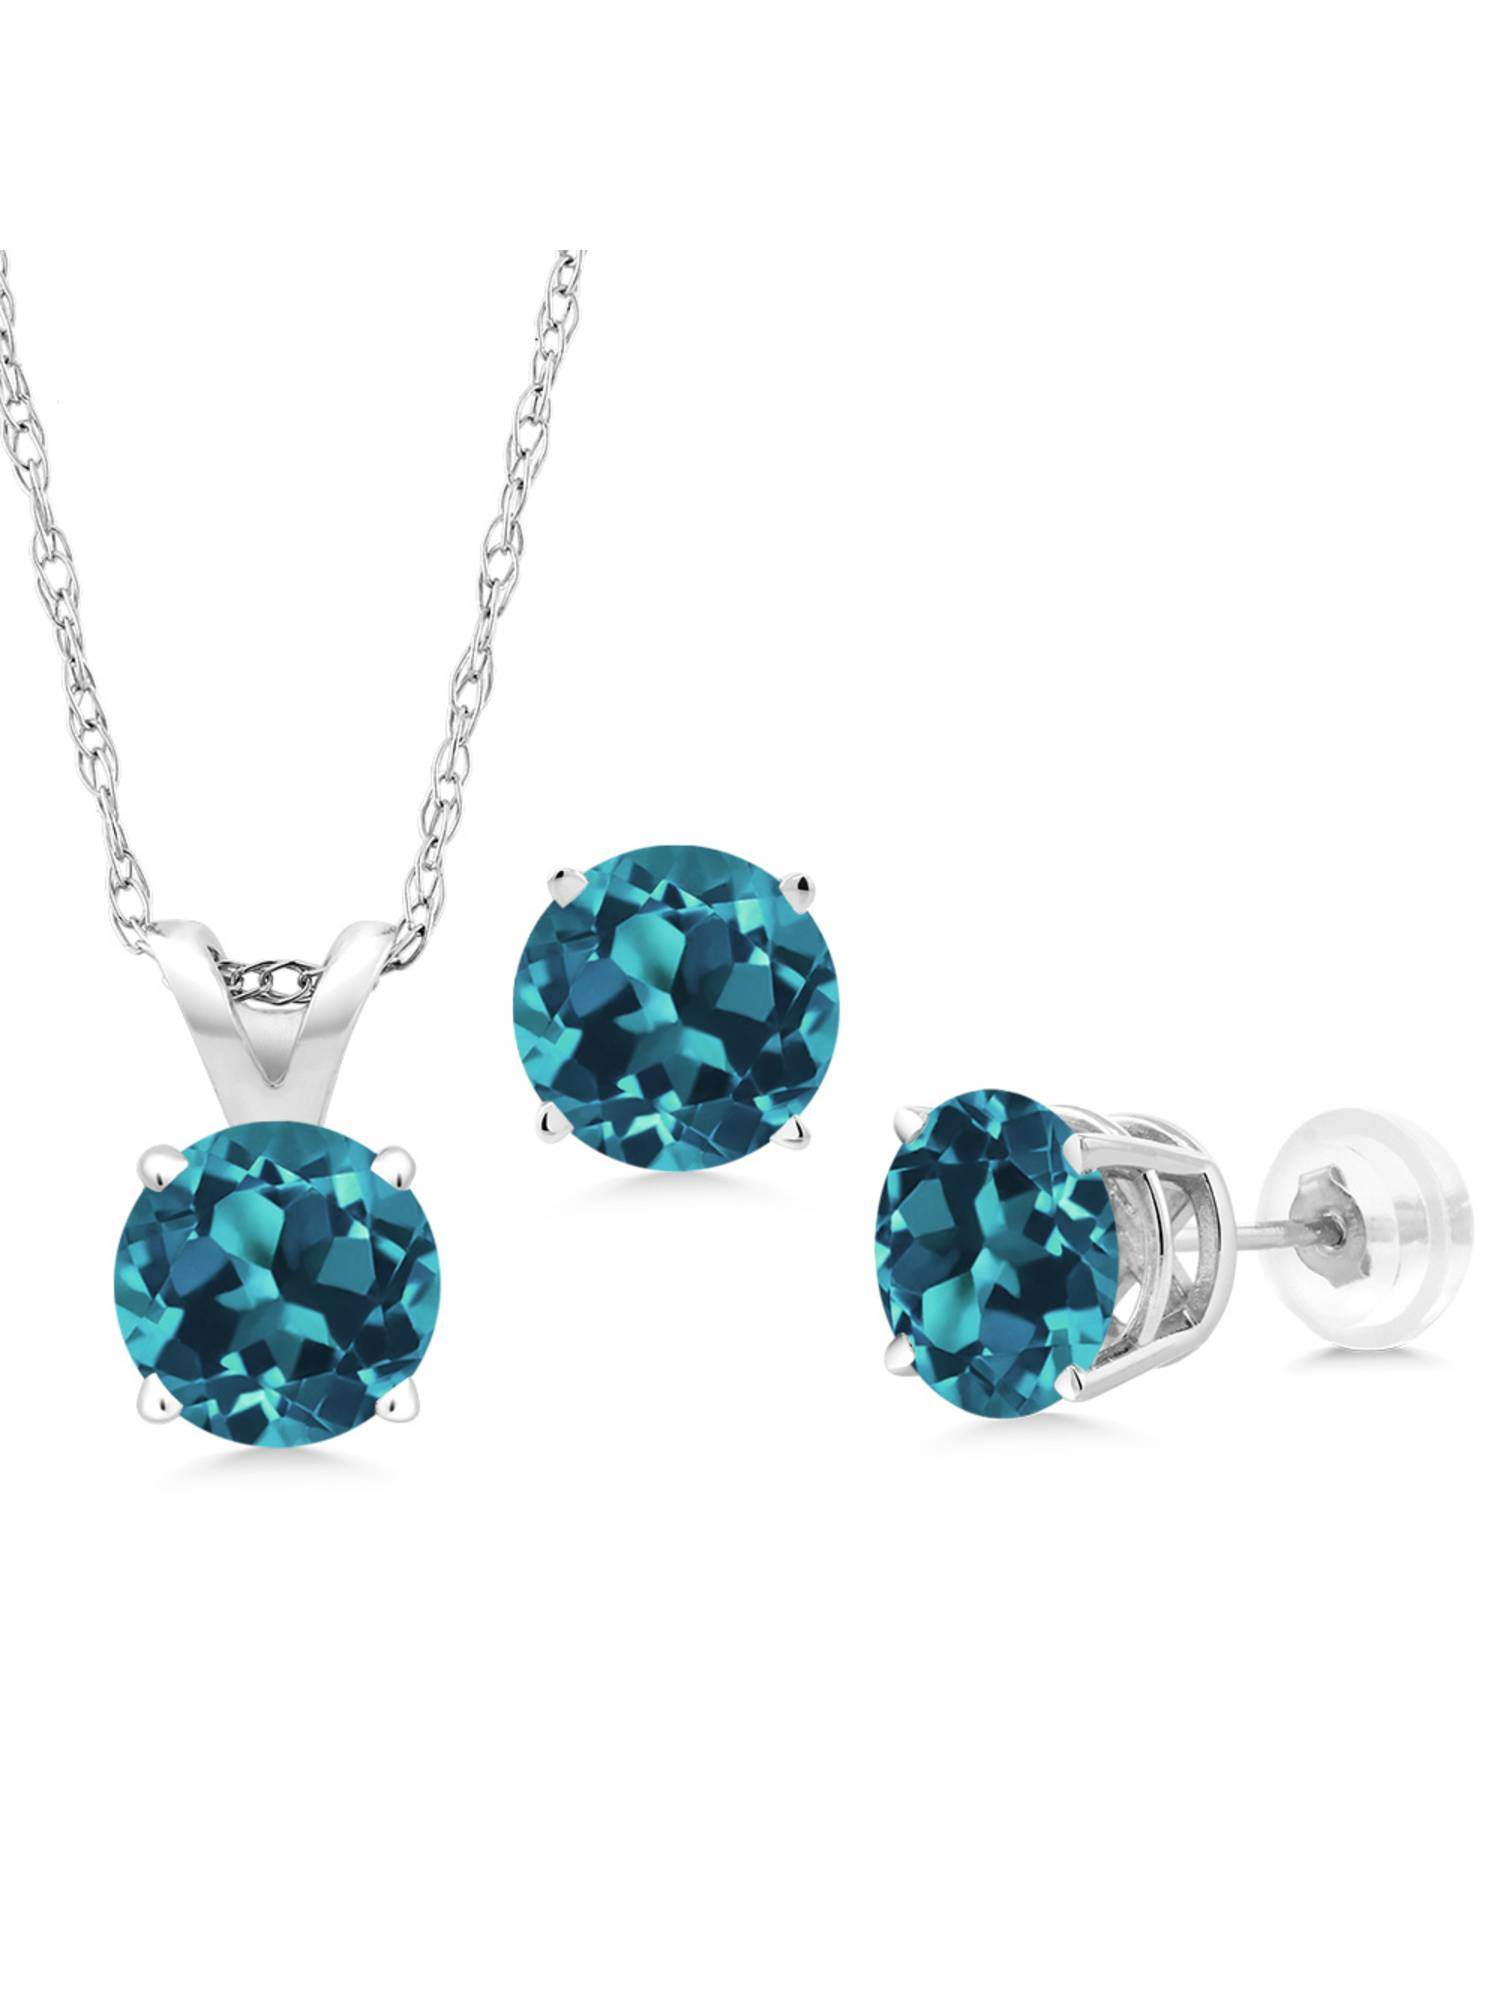 2.25 Ct Round London Blue Topaz 14K White Gold Pendant Earrings Set With Chain by